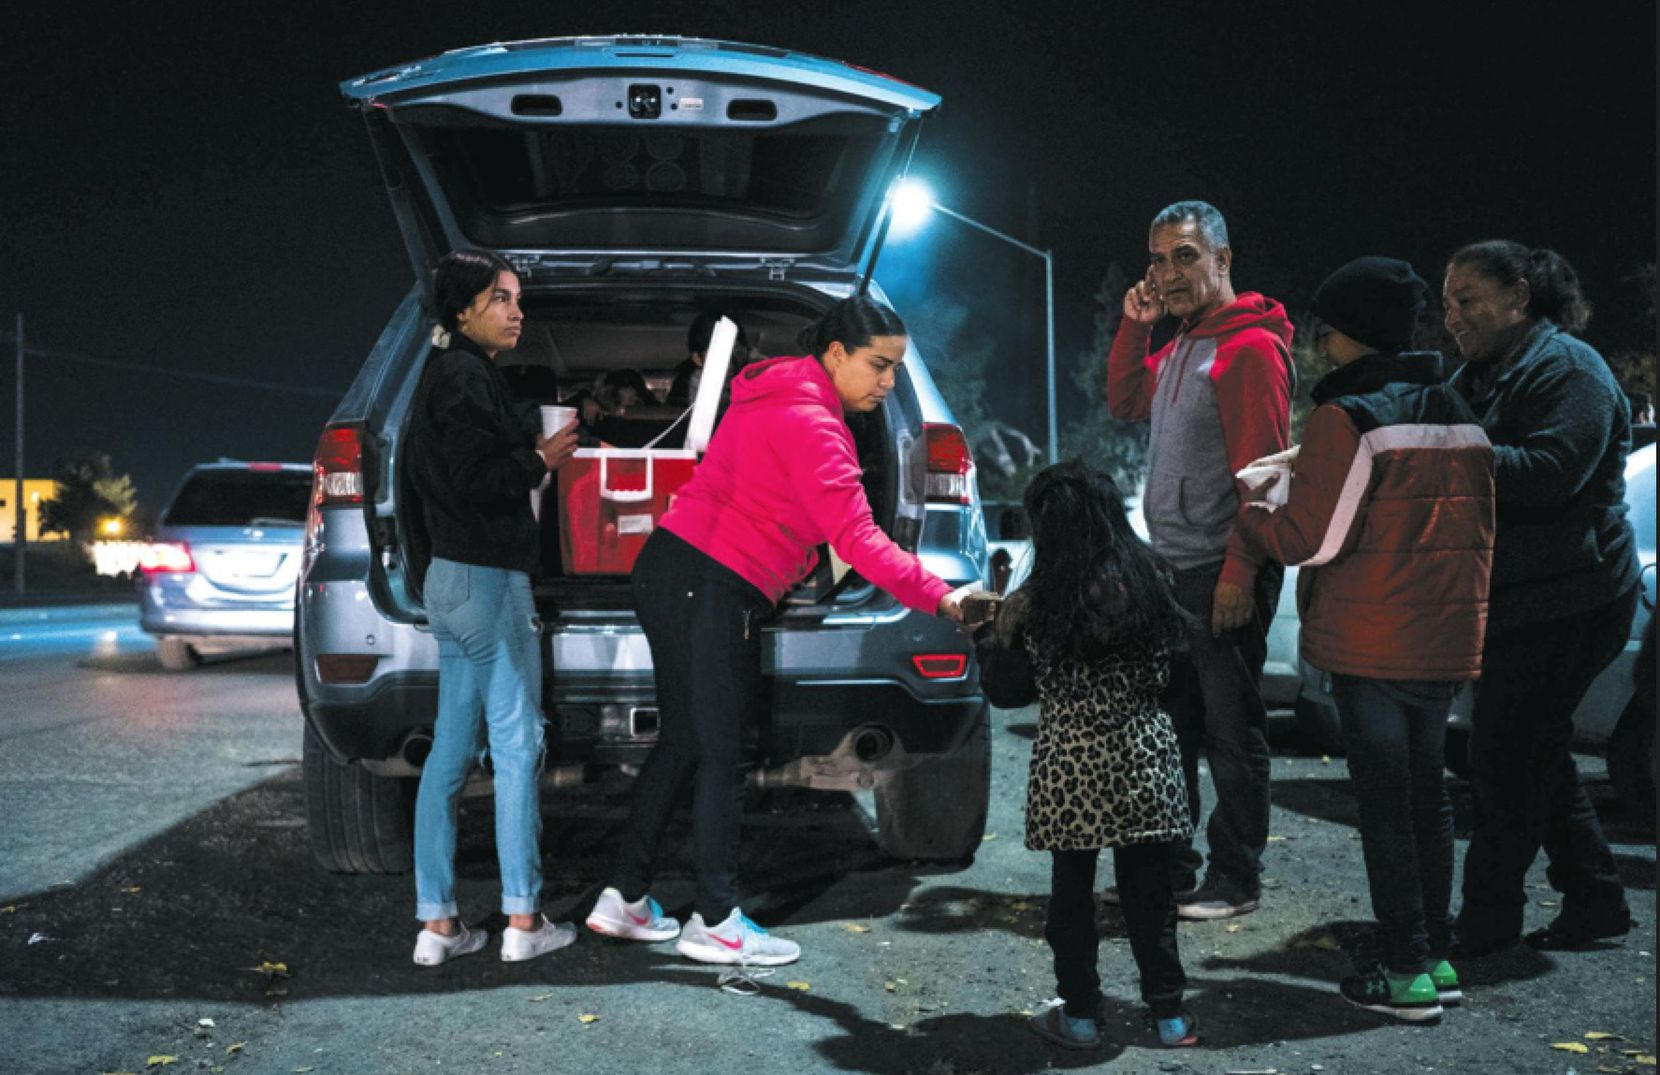 Maritza Gurrola (left), 15, and her mother Alicía Hernández, 40, both of Cuidad Juárez, hand out bread and hot chocolate to asylum-seekers. In a new poll, 40% of the respondants said they or a family member planned to migrate to the U.S.